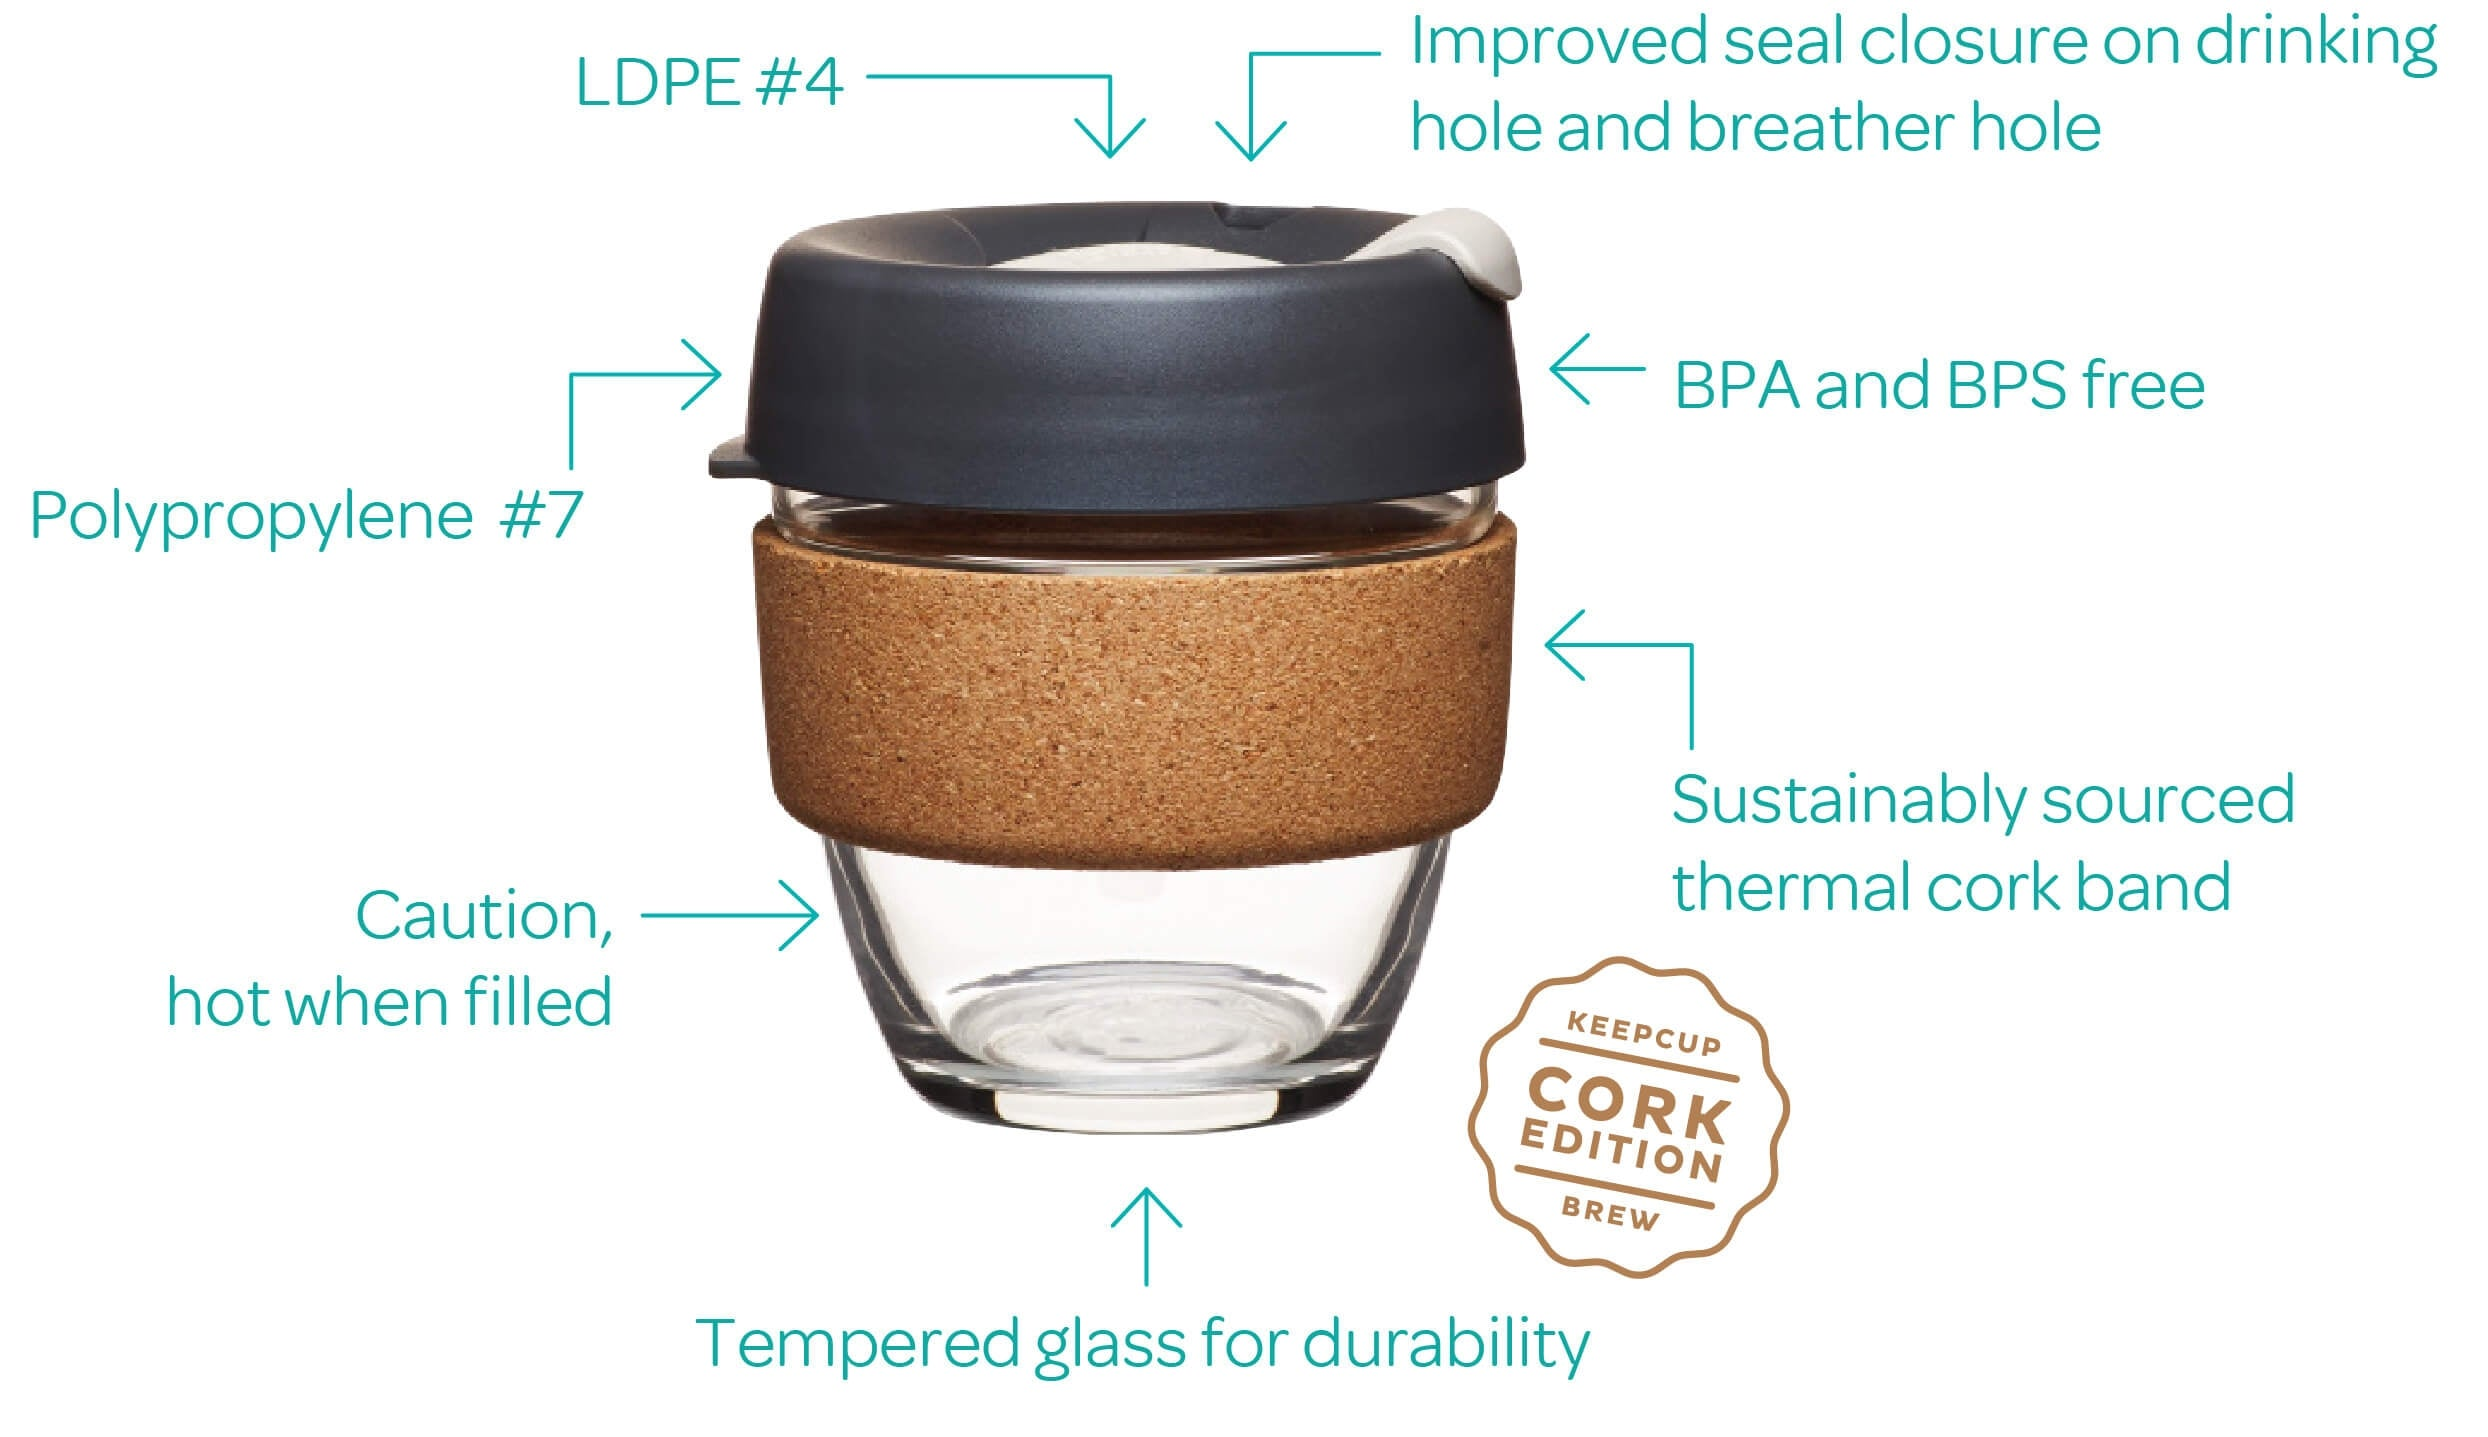 KeepCup - Reusable Coffee Cup - Cork Edition -